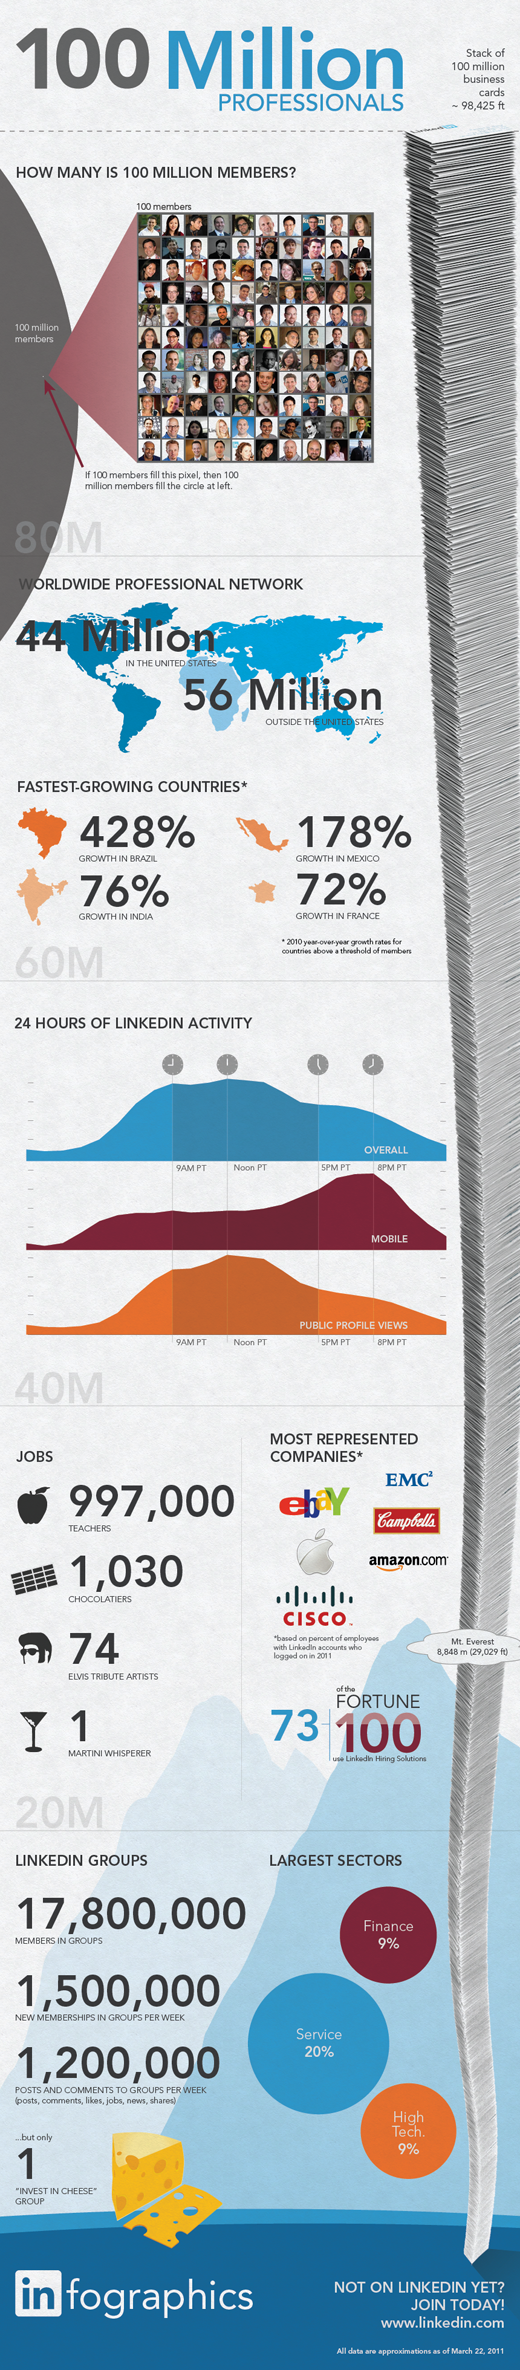 linkedin infographic resized 600